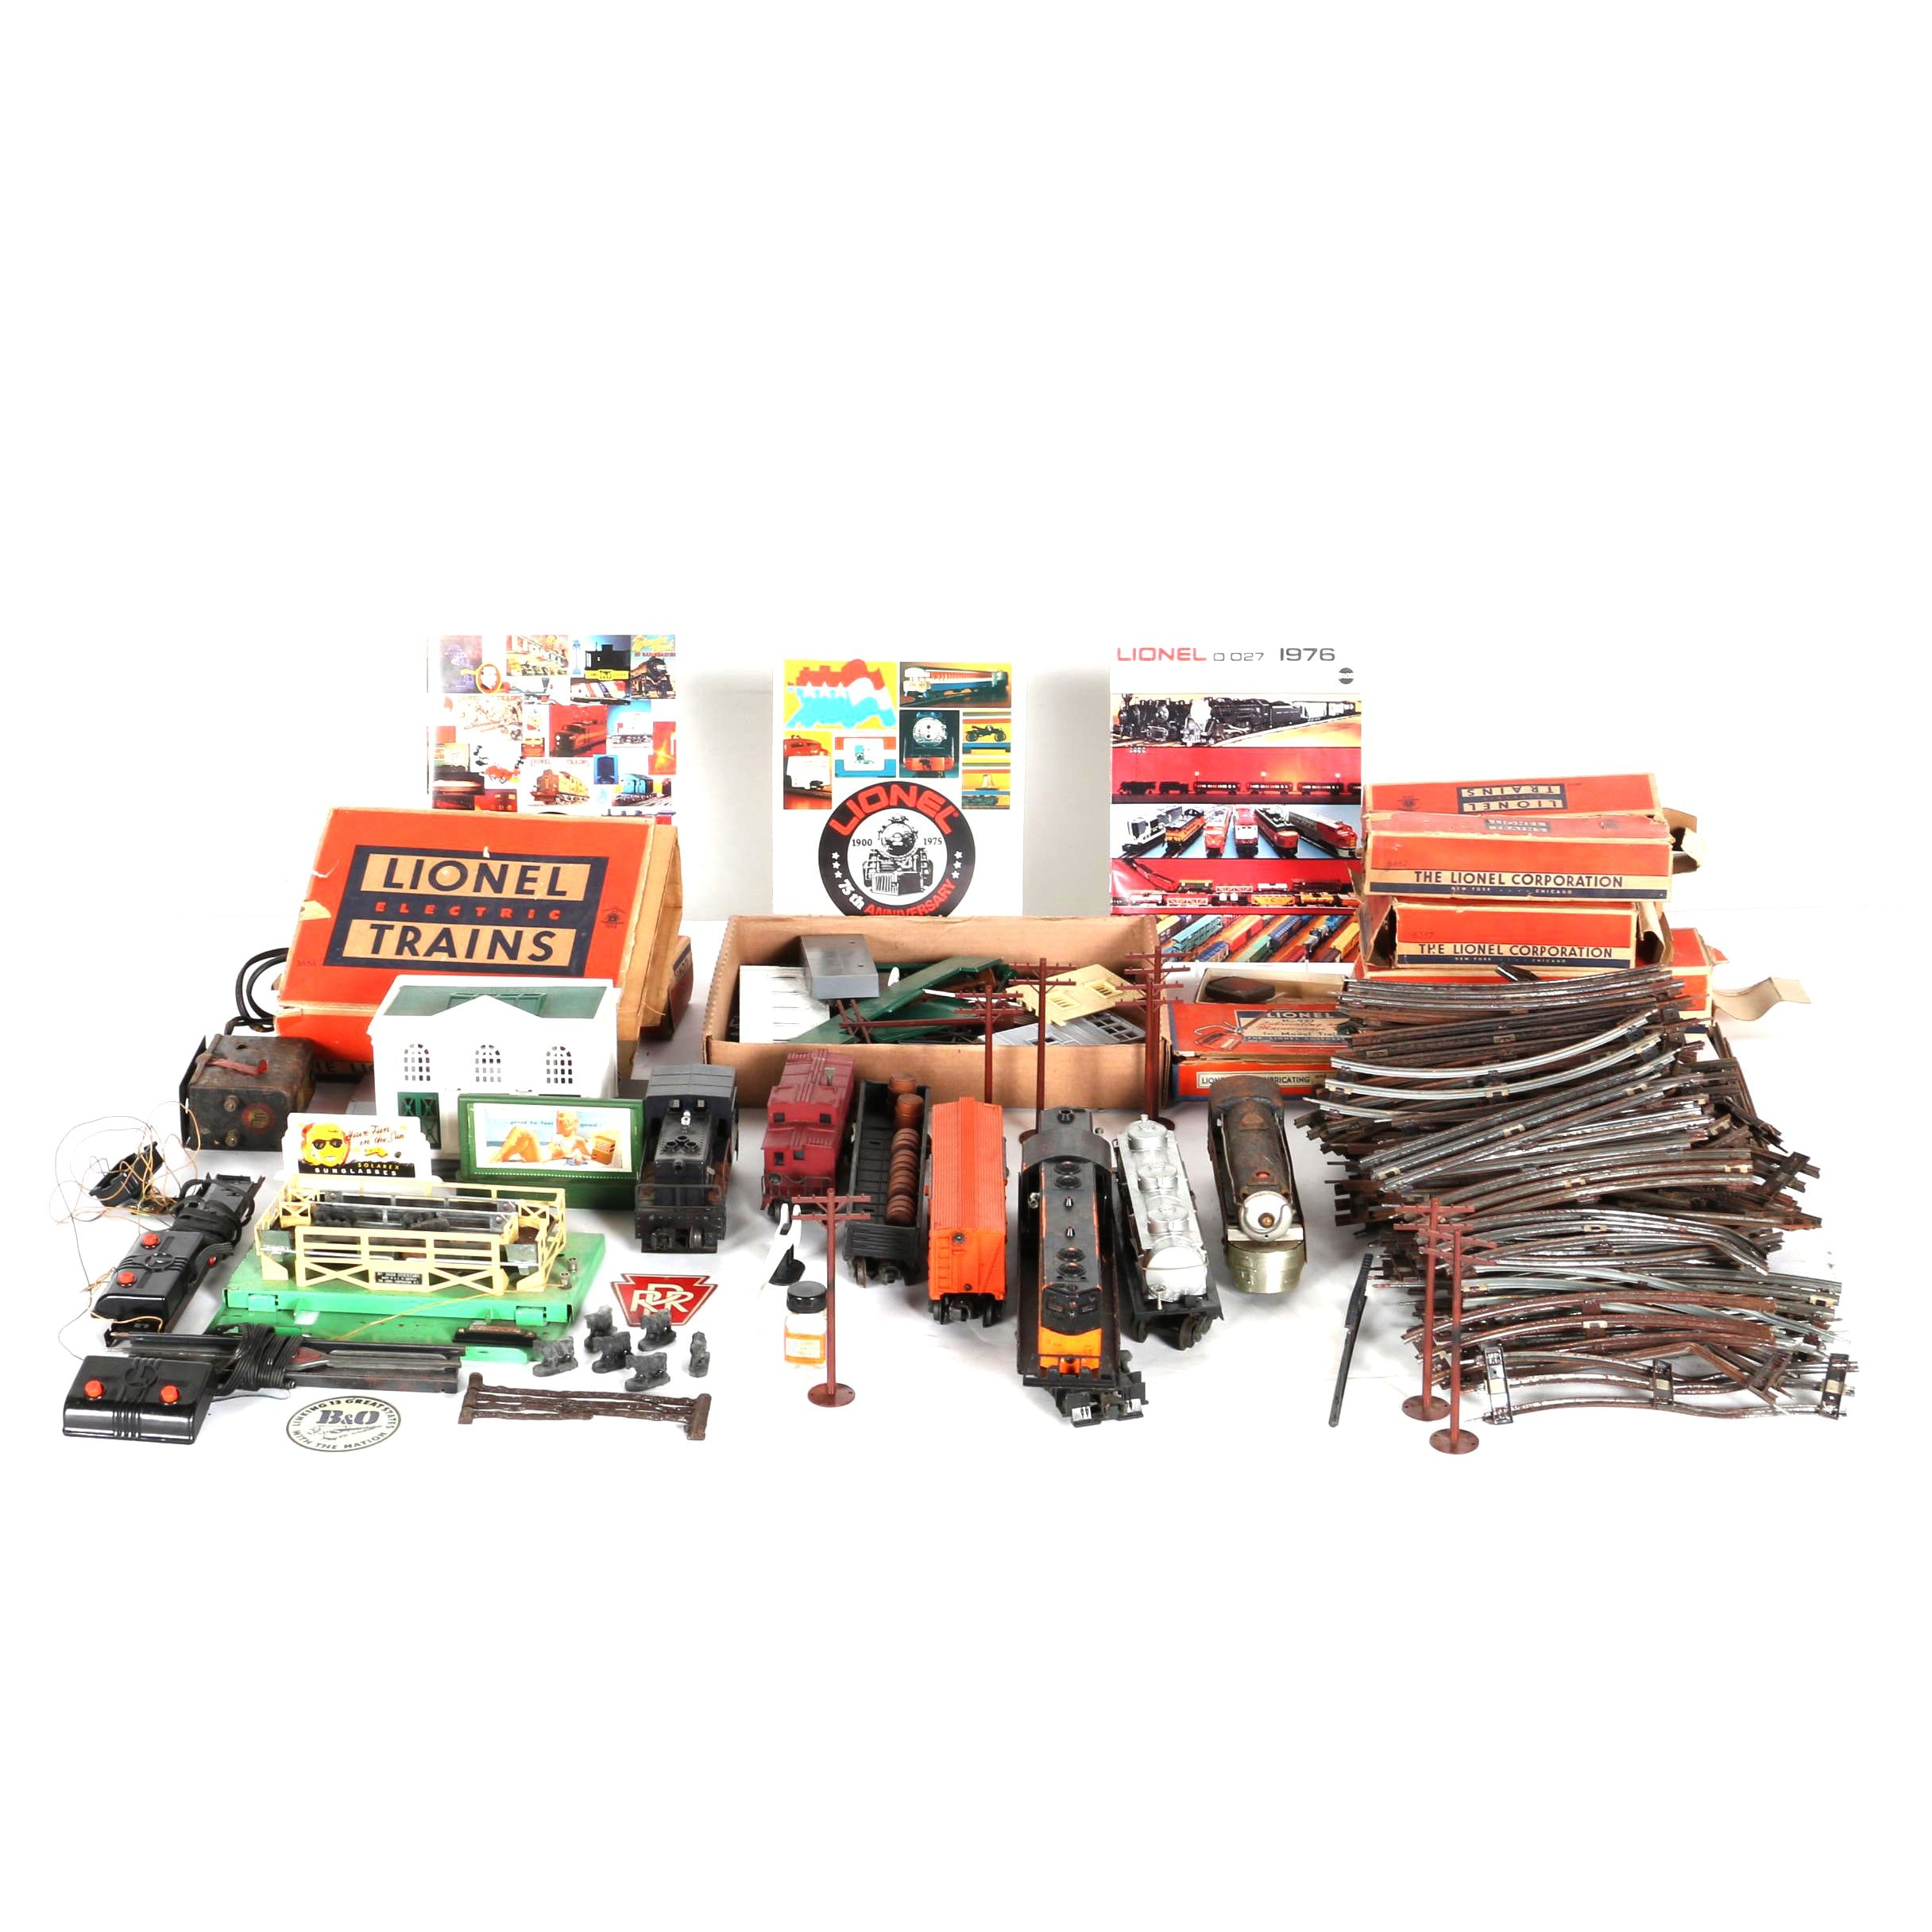 Collection of Lionel Train Cars, Tracks, and Kits